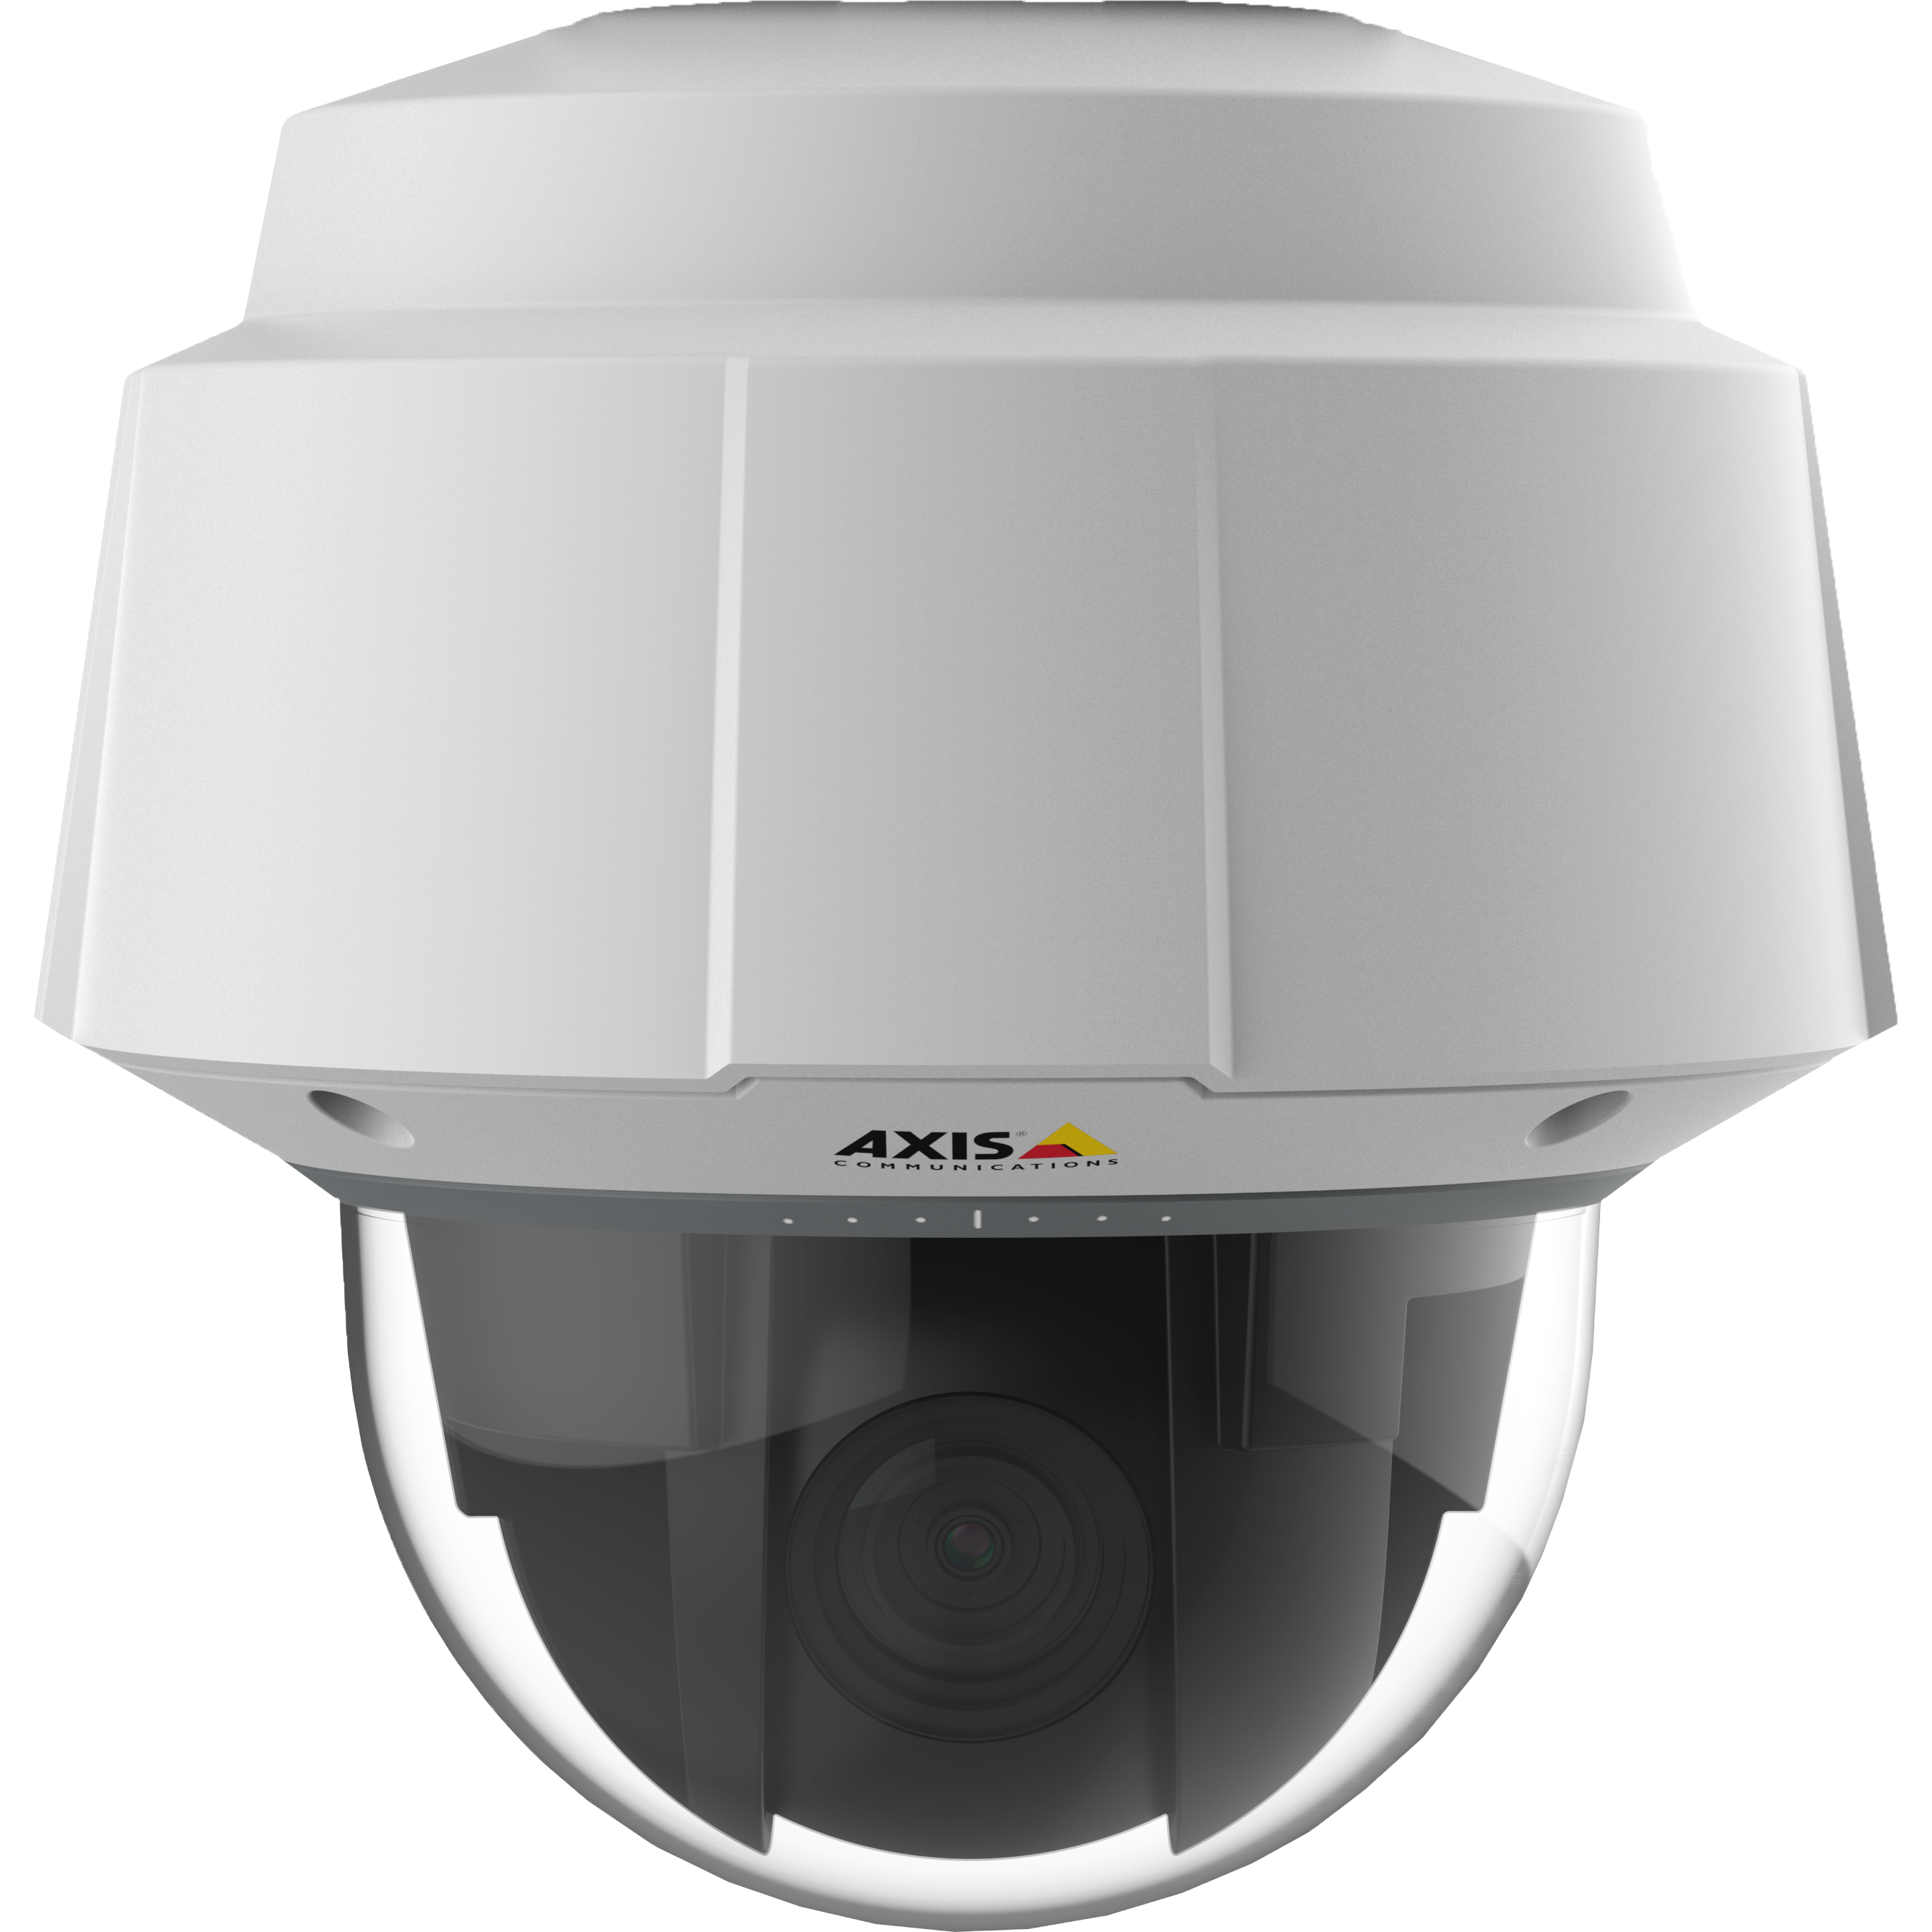 Axis Q60 Ptz Network Camera Series Axis Communications